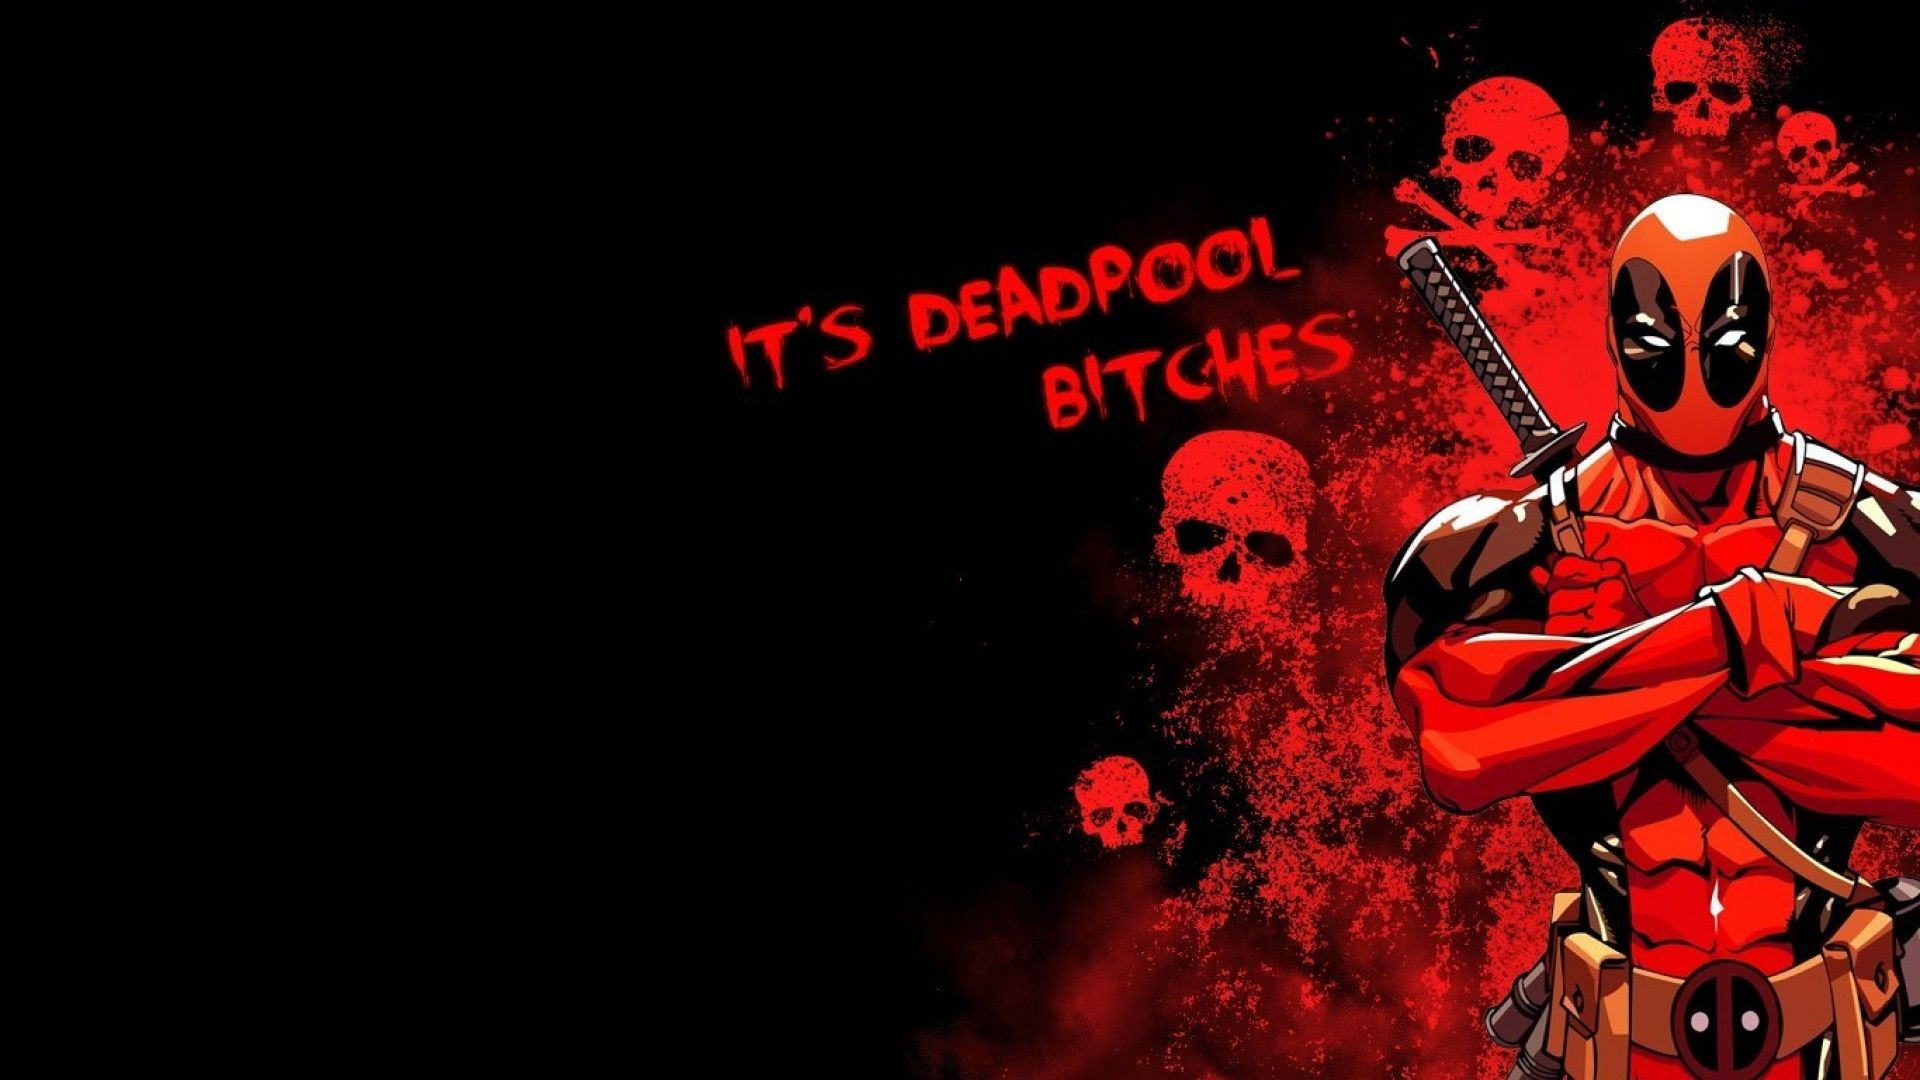 1920x1080 Wallpapers Deadpool | Wallpaper Deadpool | Pinterest | Deadpool ...